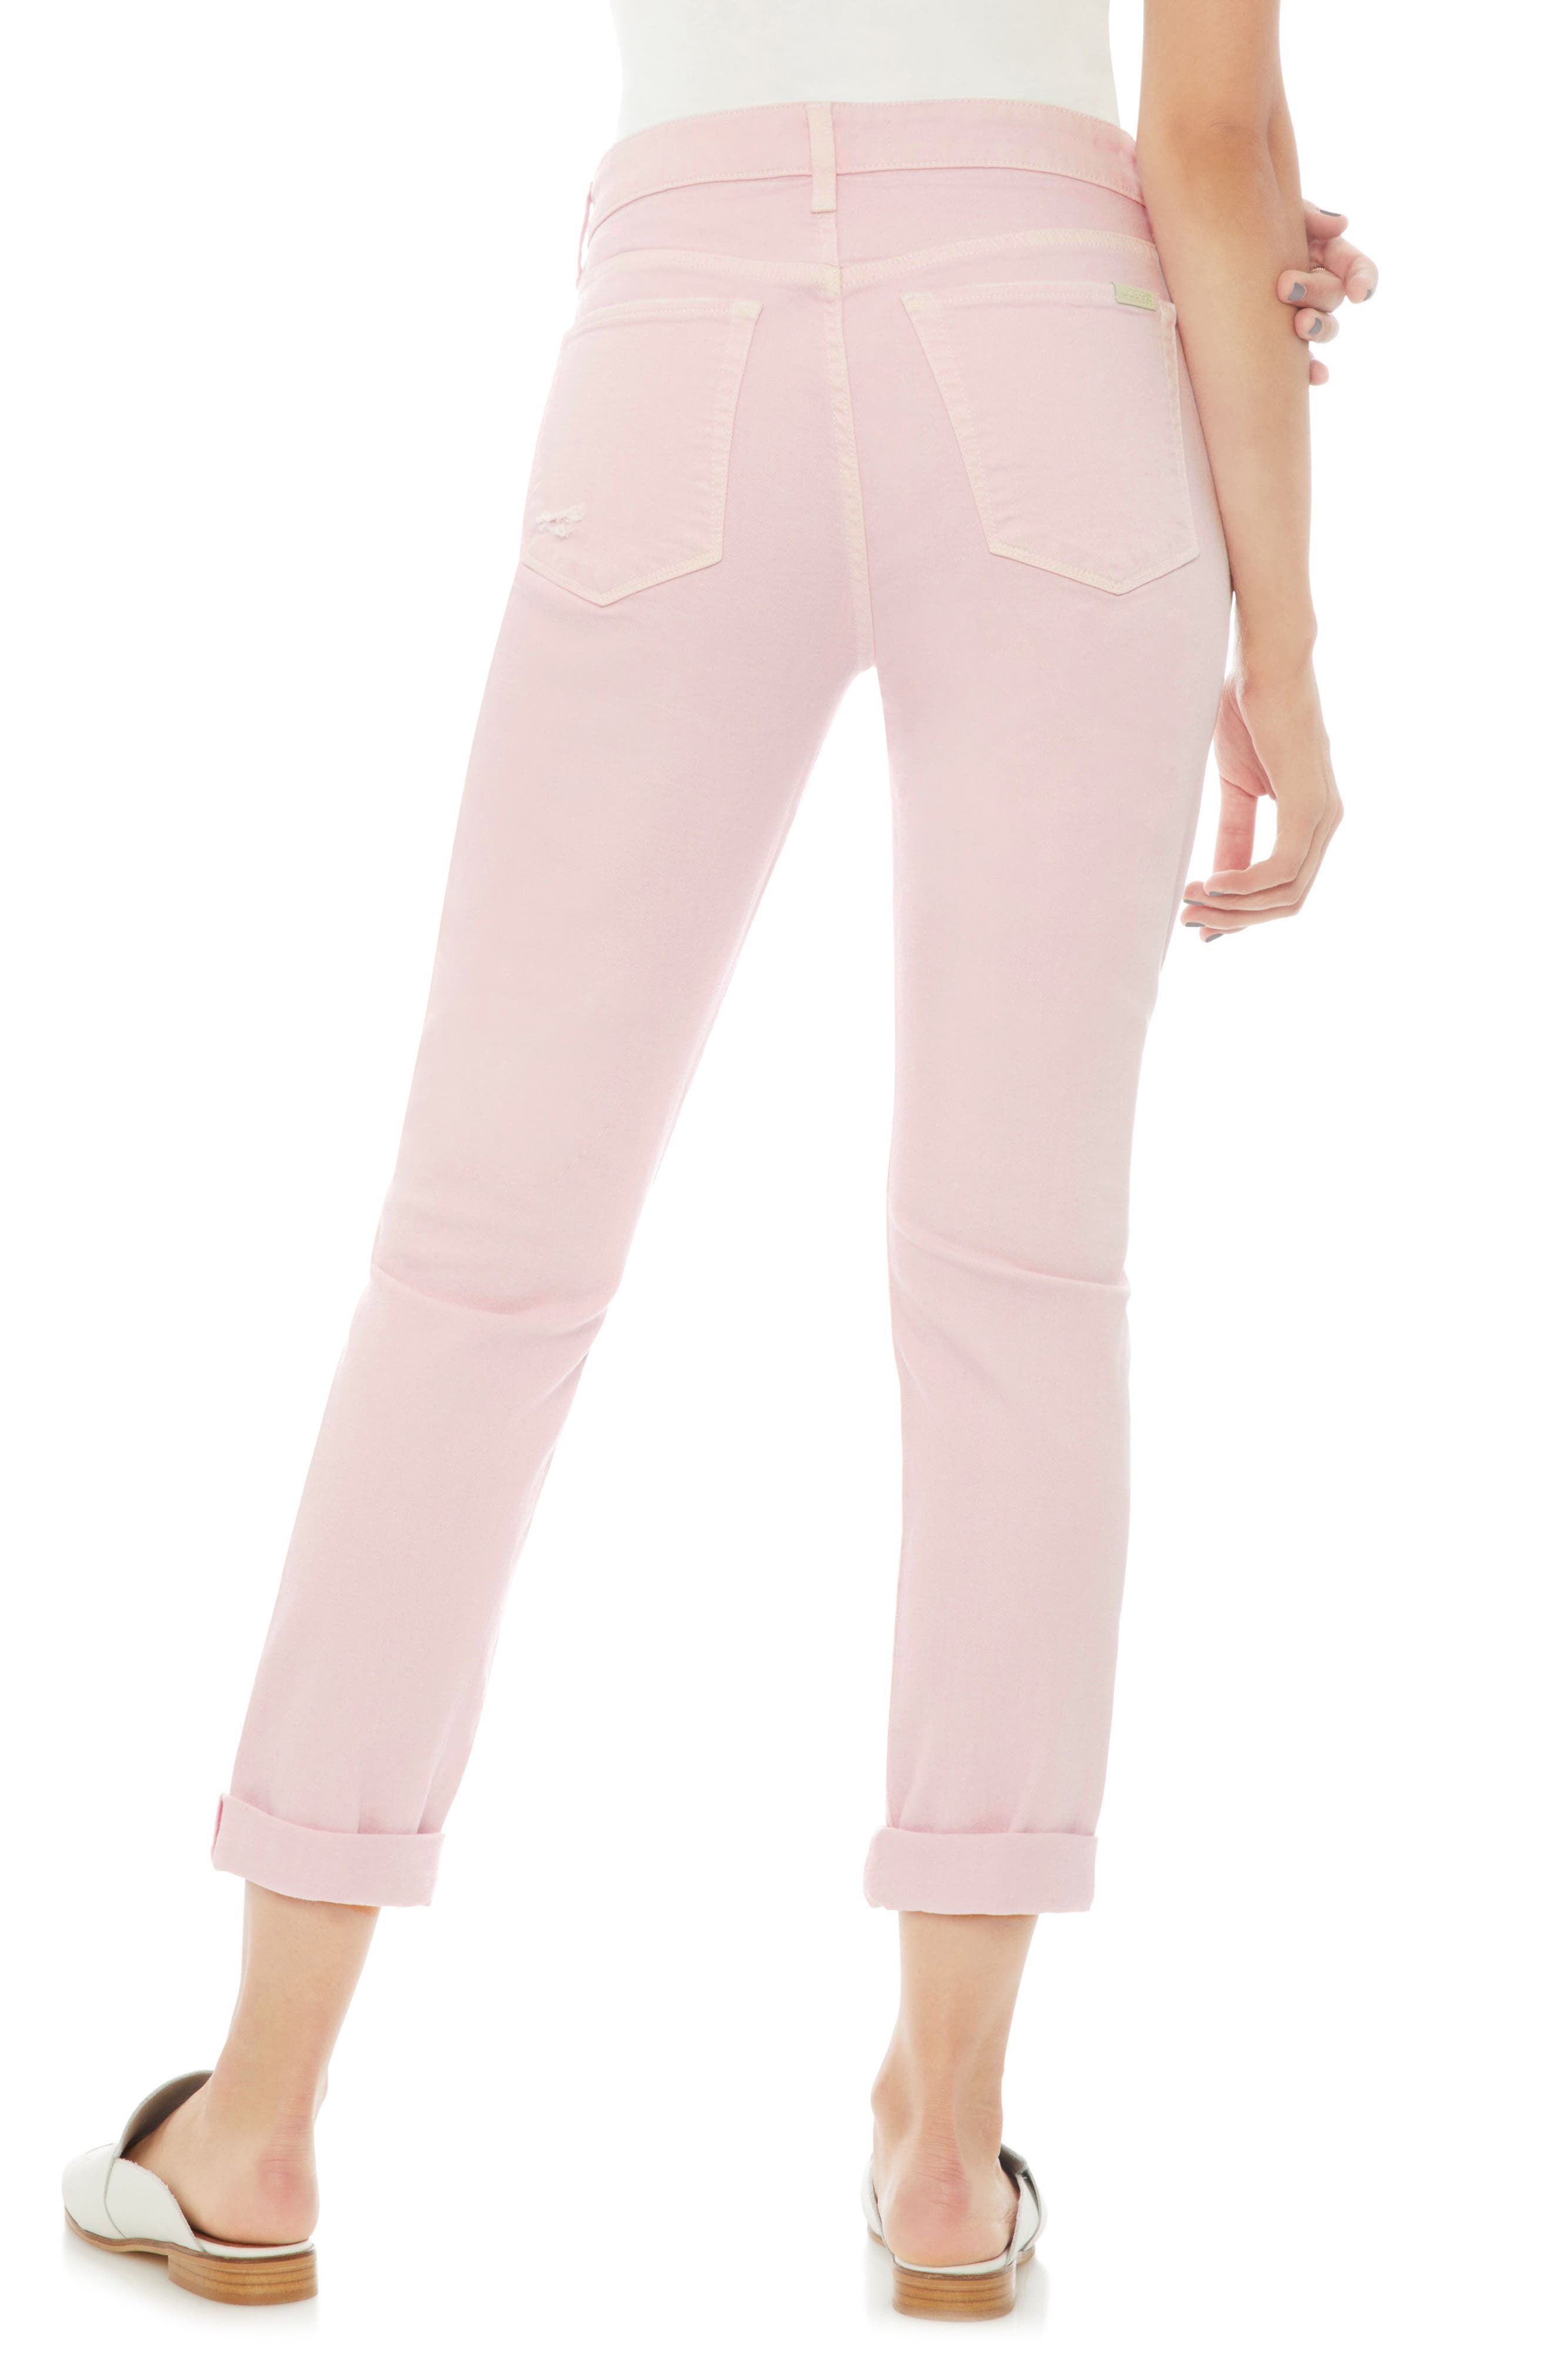 Smith Ripped High Waist Crop Slim Jeans,                             Alternate thumbnail 2, color,                             Parfait Pink